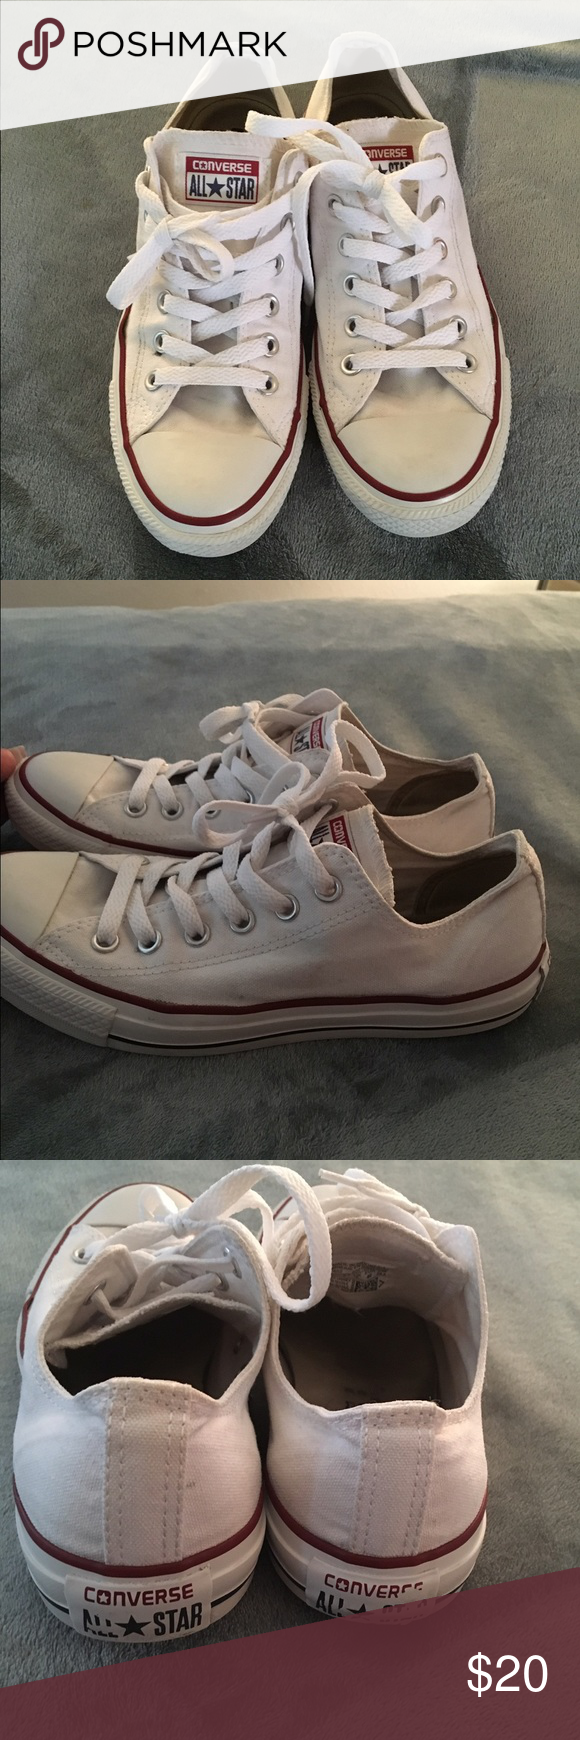 All star unisex white Converse. Men 7 women 9 These are used shoes please Ask questions before purchasing soles are intact however there are slight cracks on the sides please see photos. But still in great condition. Converse Shoes Sneakers